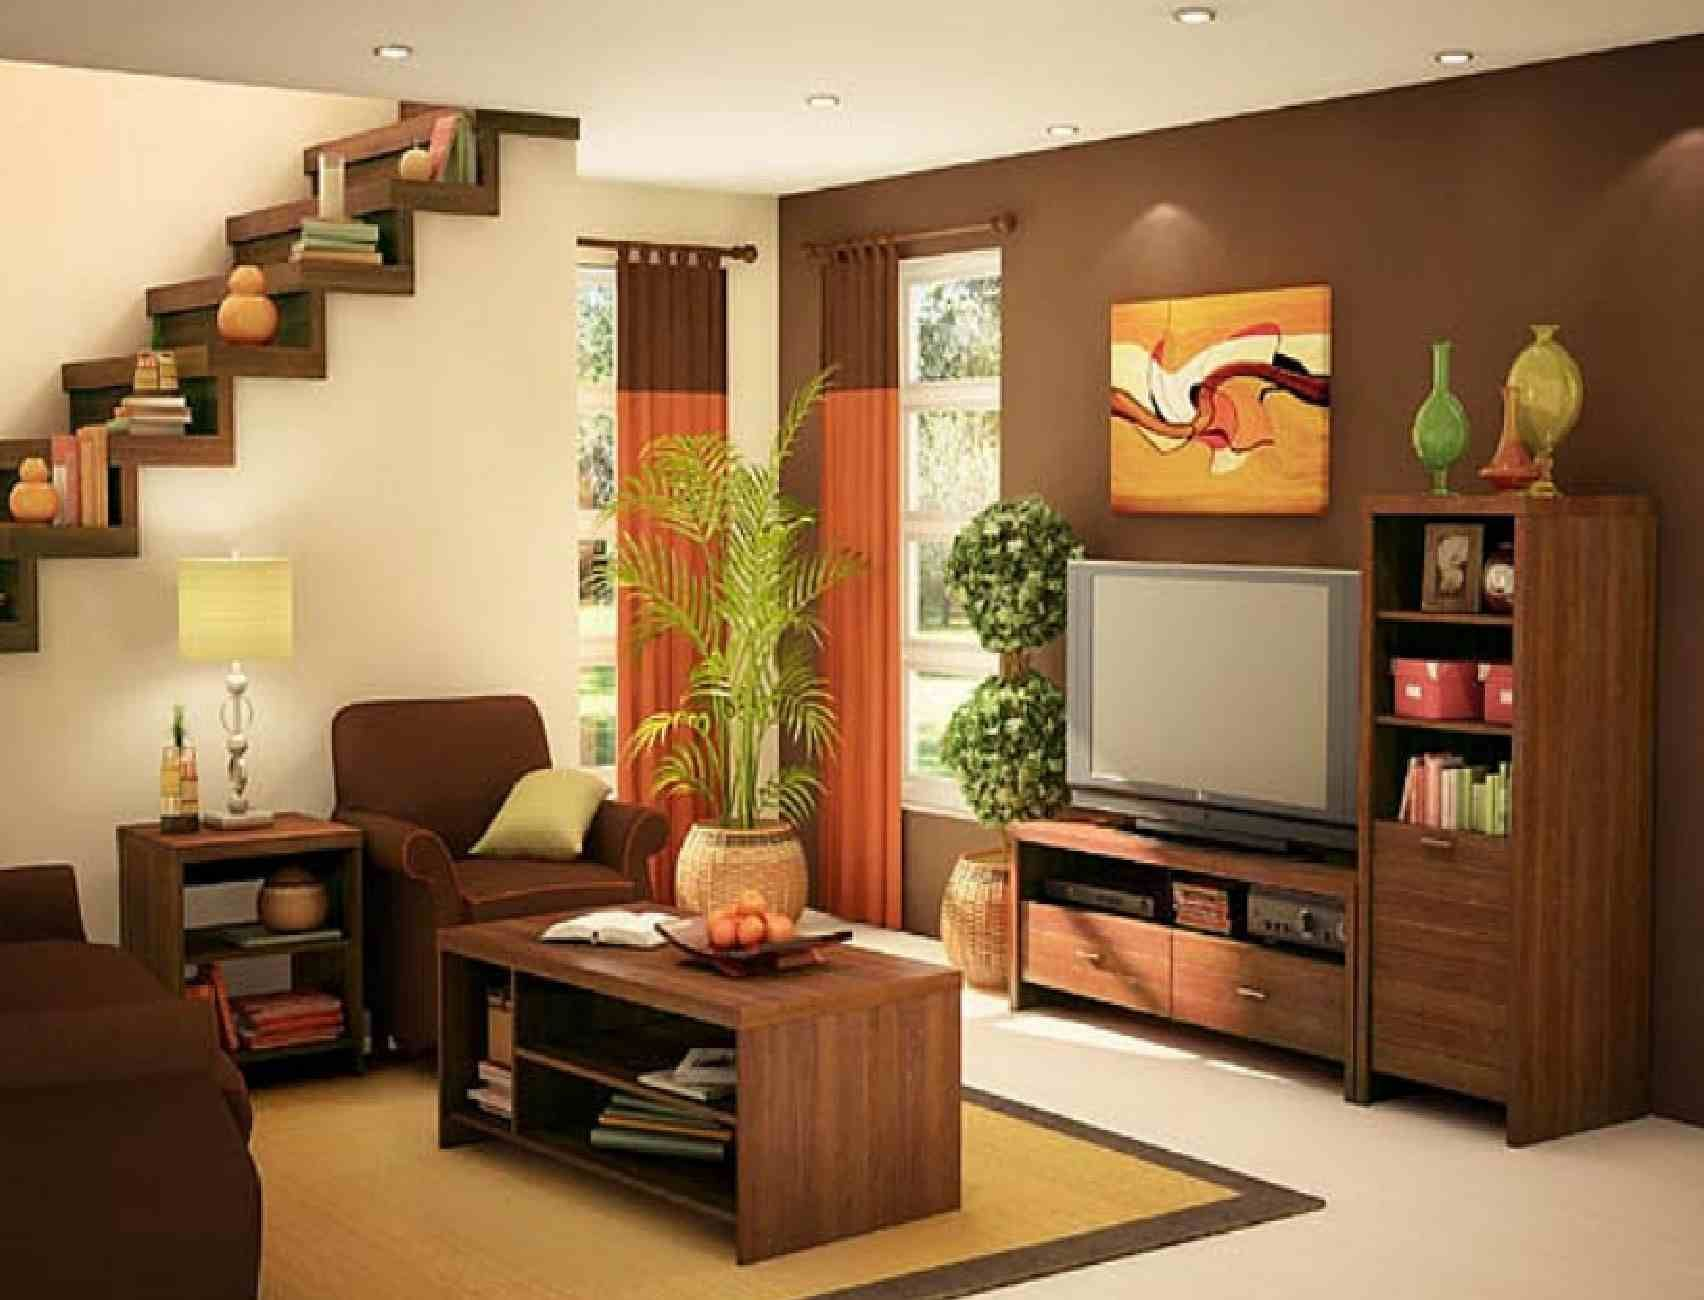 Simple home interior design living room - Great Simple Living Rooms On Living Room With Simple Living Room Designs Simple Living Room Designs Simple Living Plans